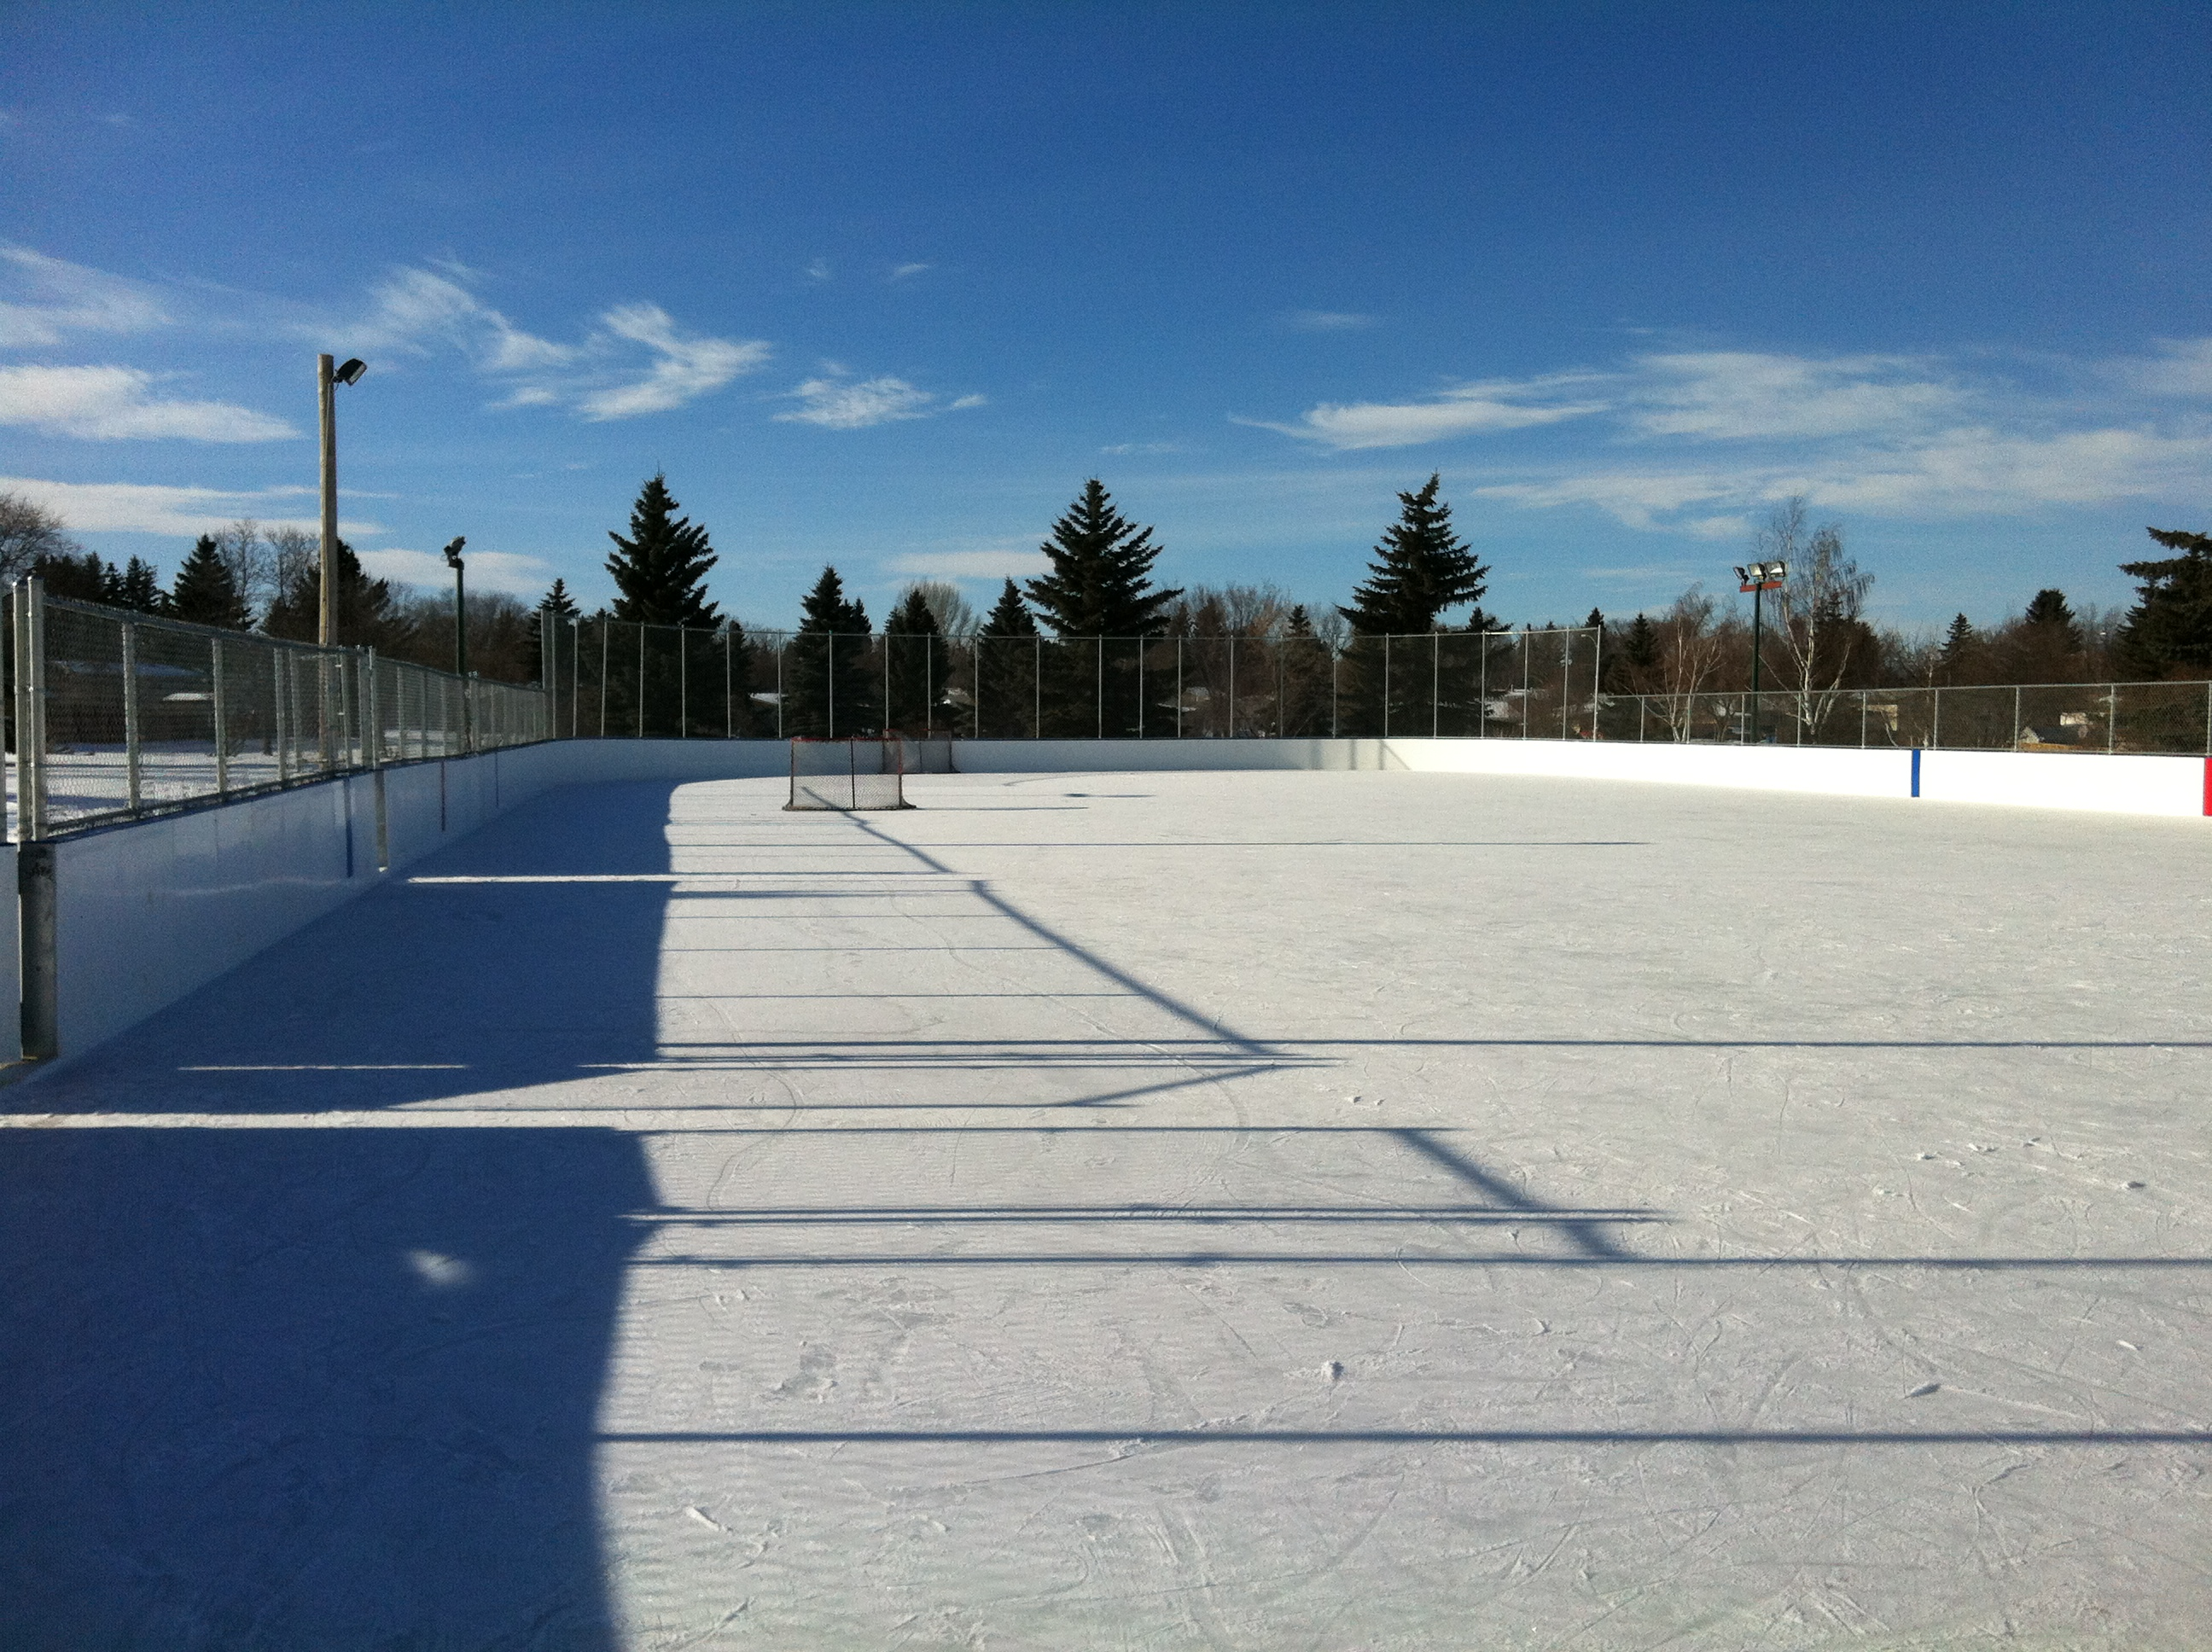 Cres Hts new outdoor rink 2010 (3).JPG